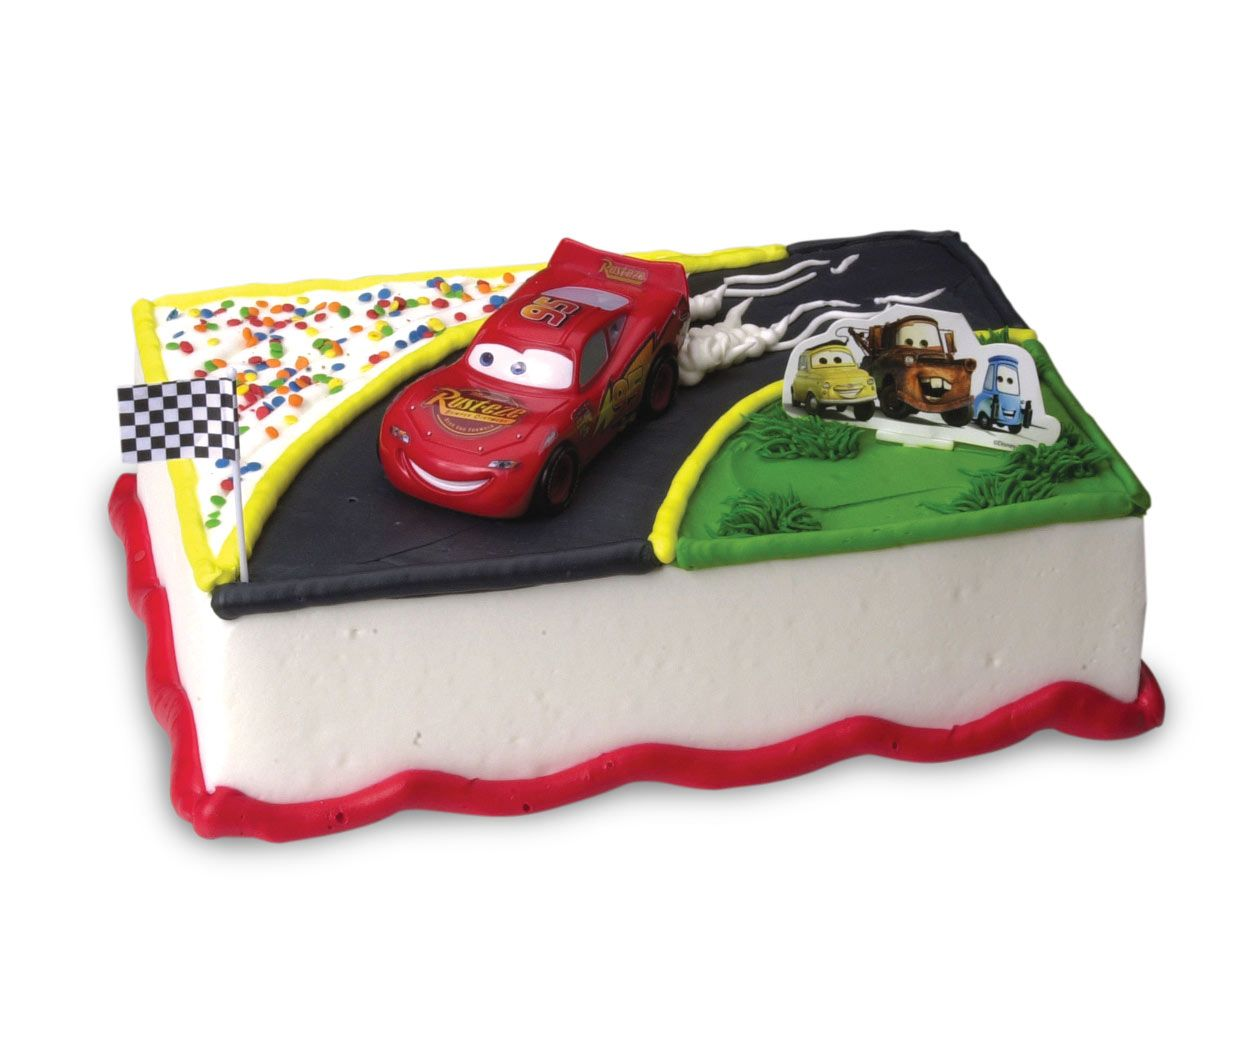 Cars Ice Cream Cake Cakes Pinterest Cake Birthday Cake And